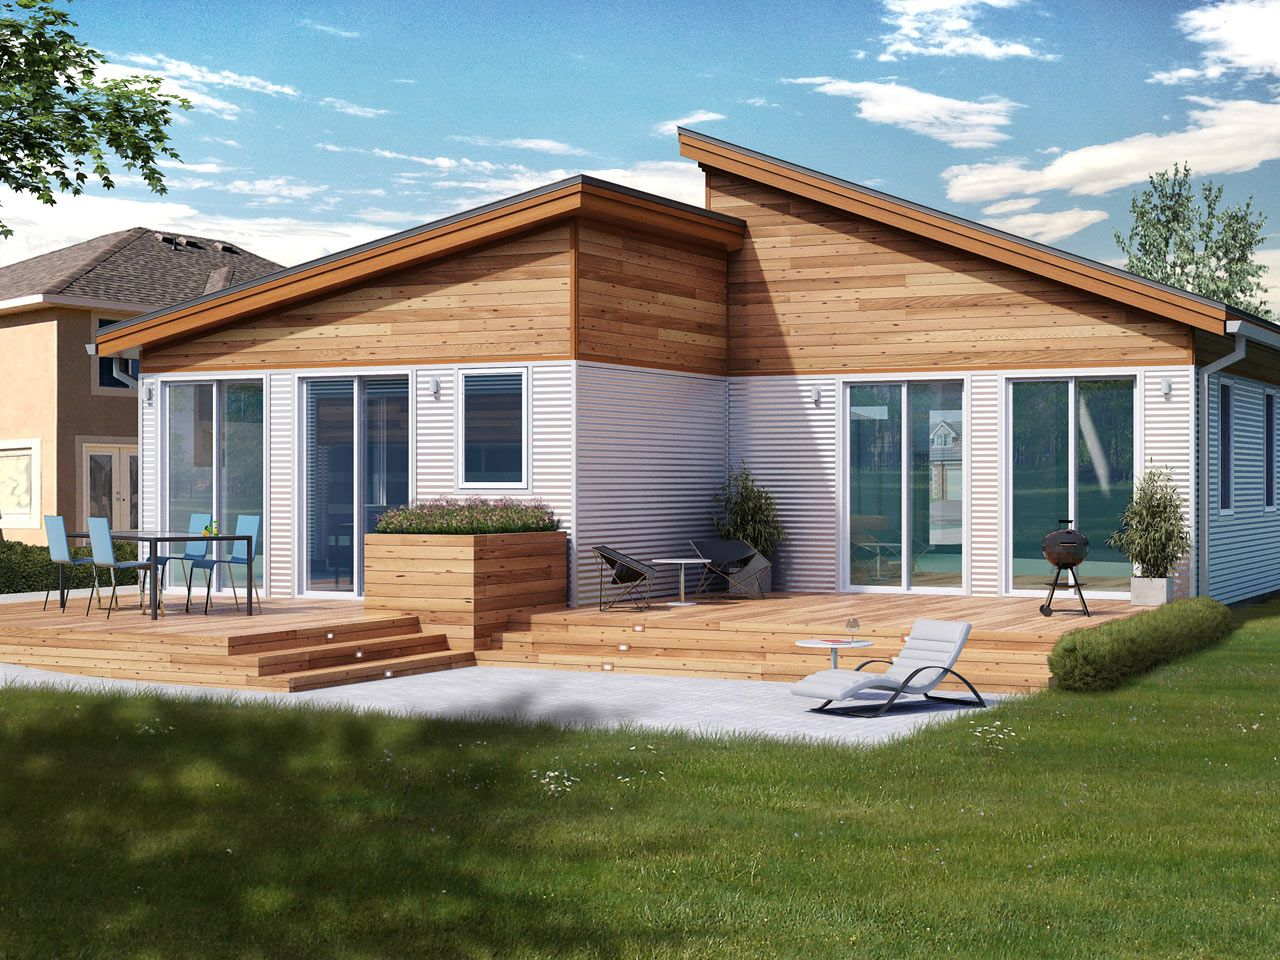 Prefab A Frame House Method Homes Builds Precision Engineered Prefab Structures Method